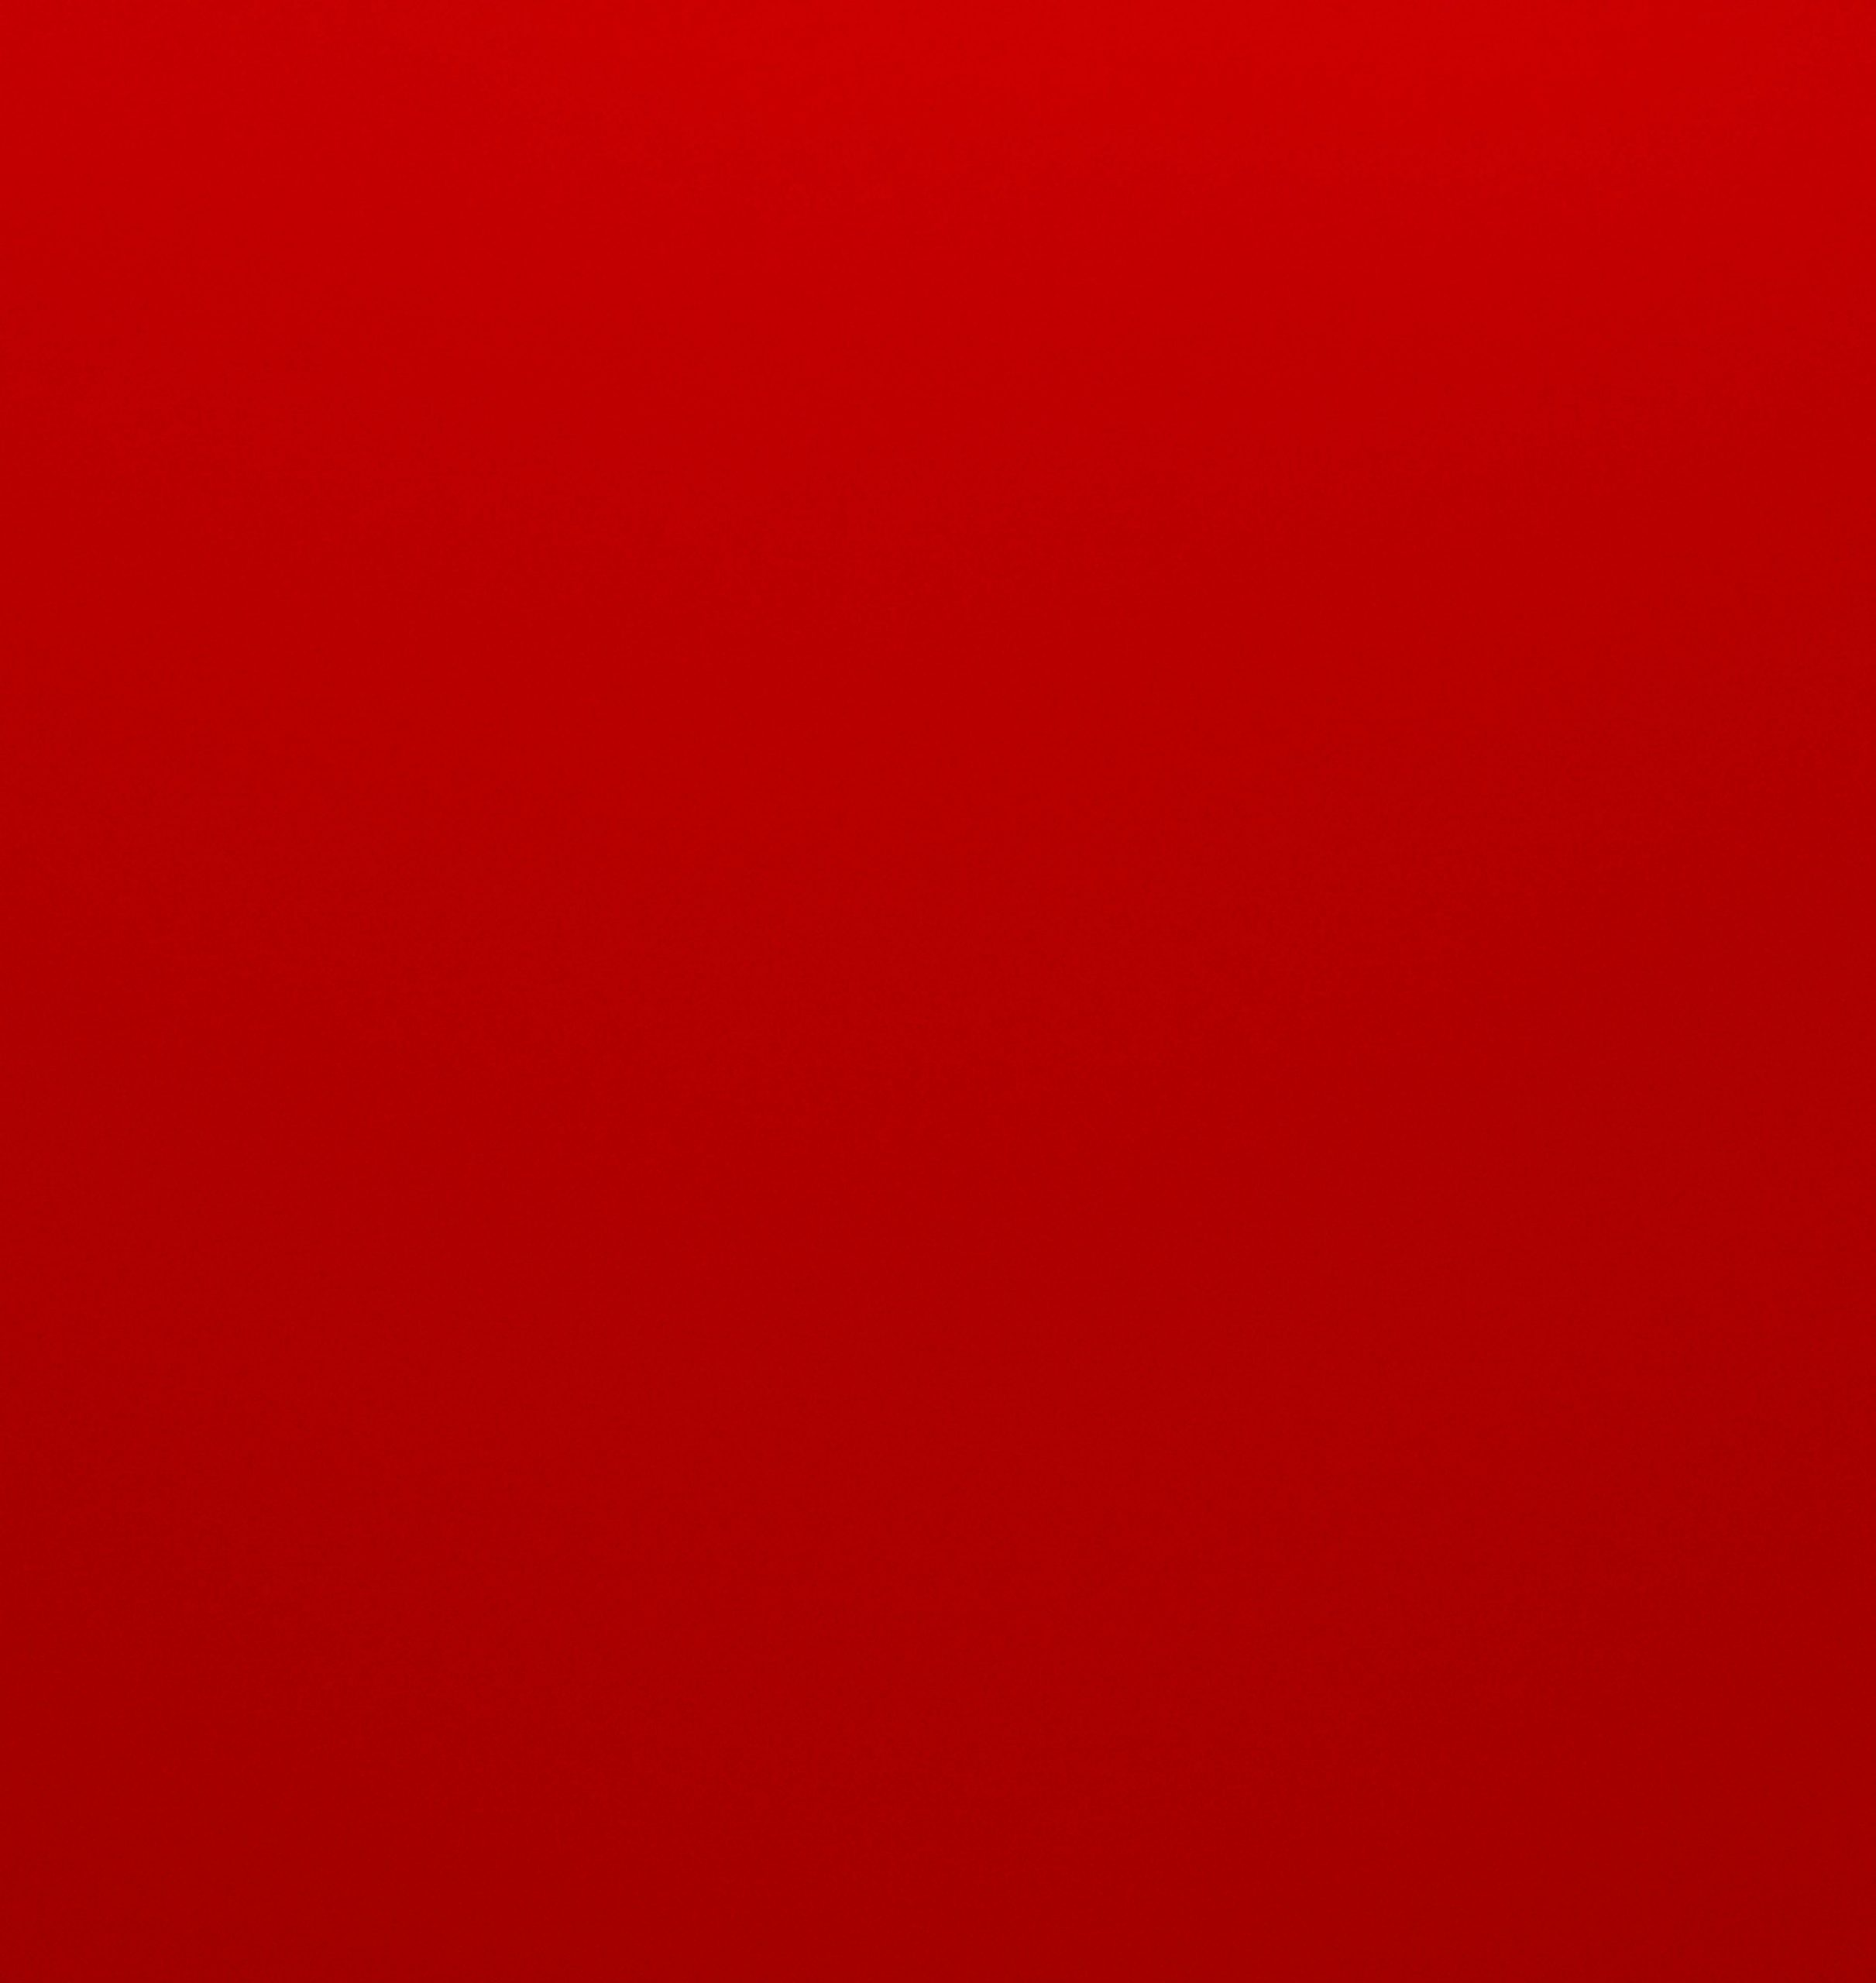 Latest Red Wallpaper photo for hd